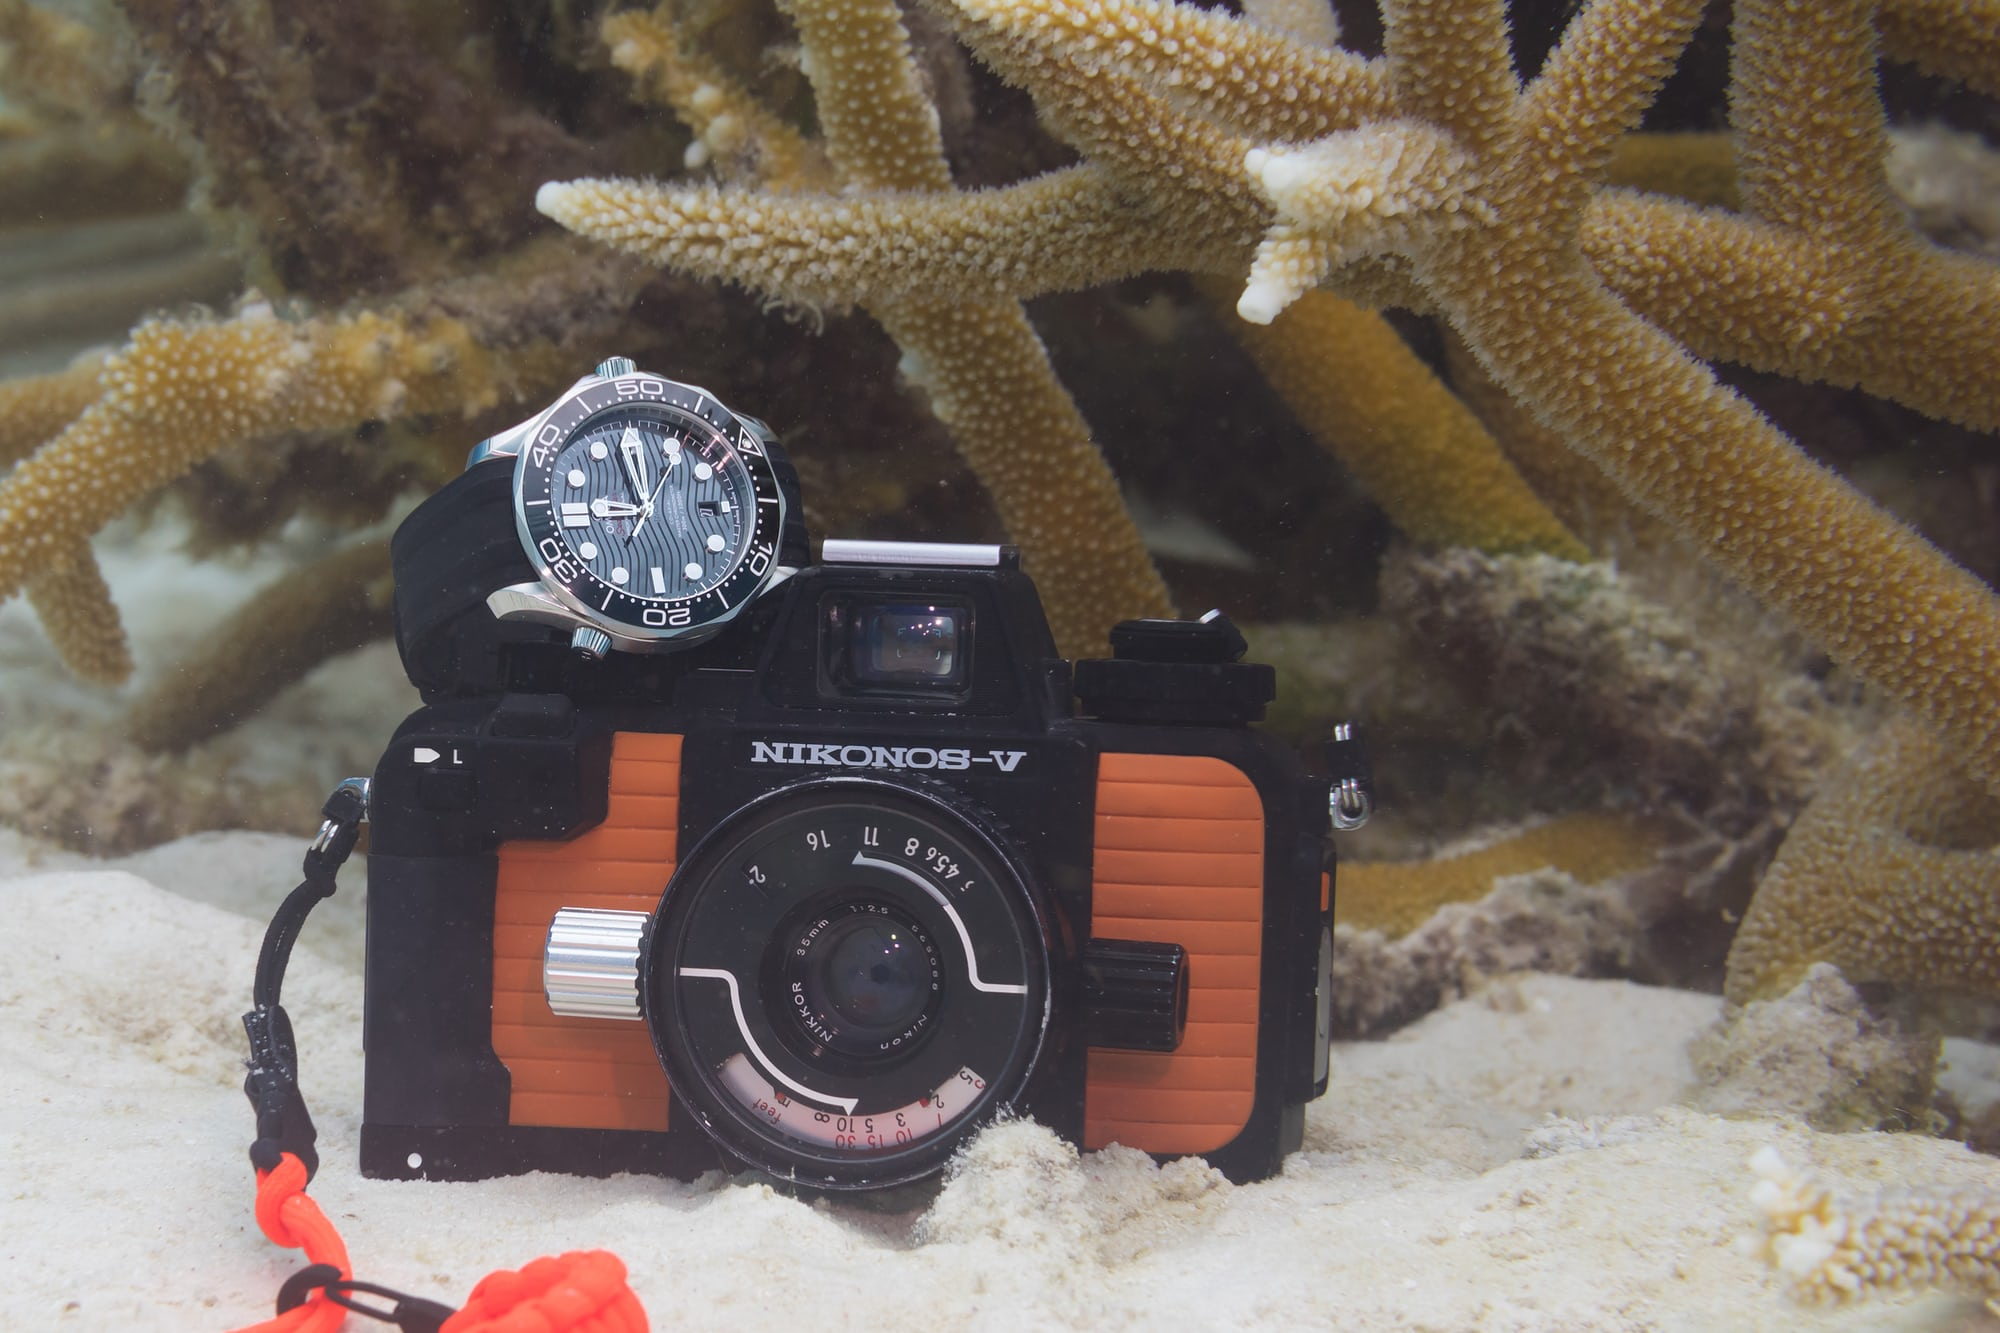 In-Depth: Diving With The Omega Seamaster Professional 300M SM300 pro UW 7